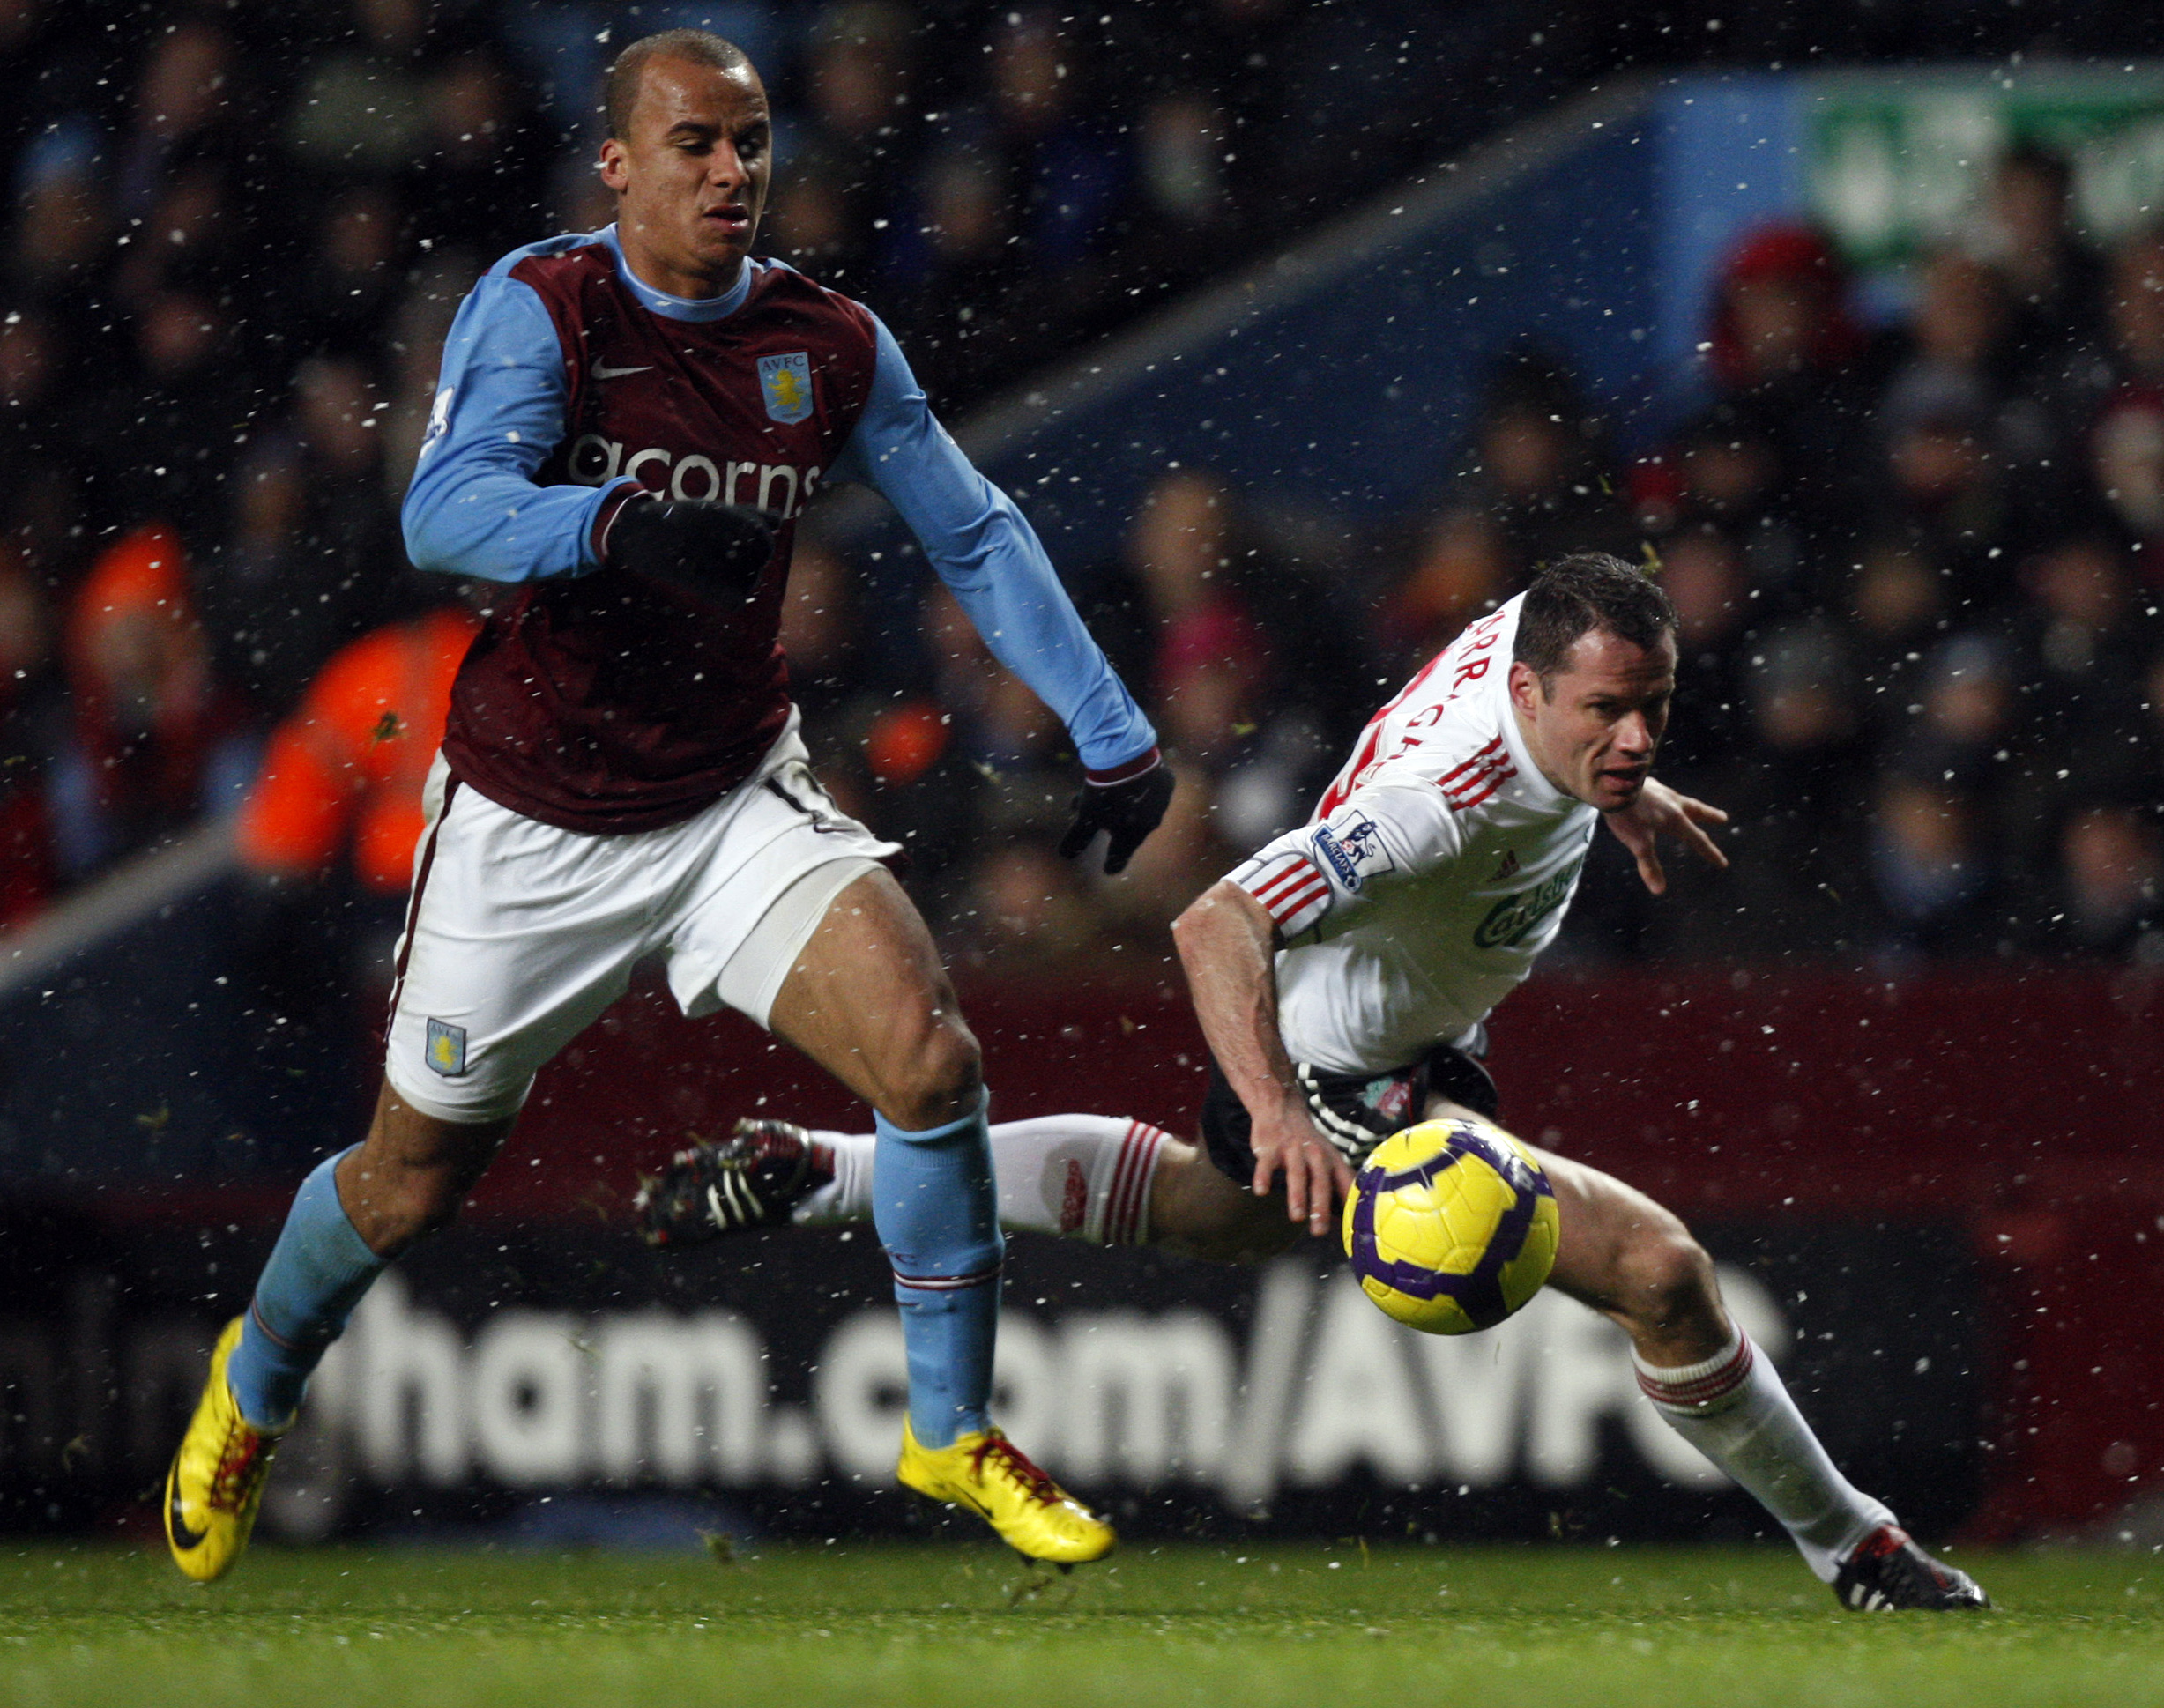 Aston Villa's Gabriel Agbonlahor, left, vies for the ball with Liverpool's Jamie Carragher as he falls during their English Premier League soccer matc...